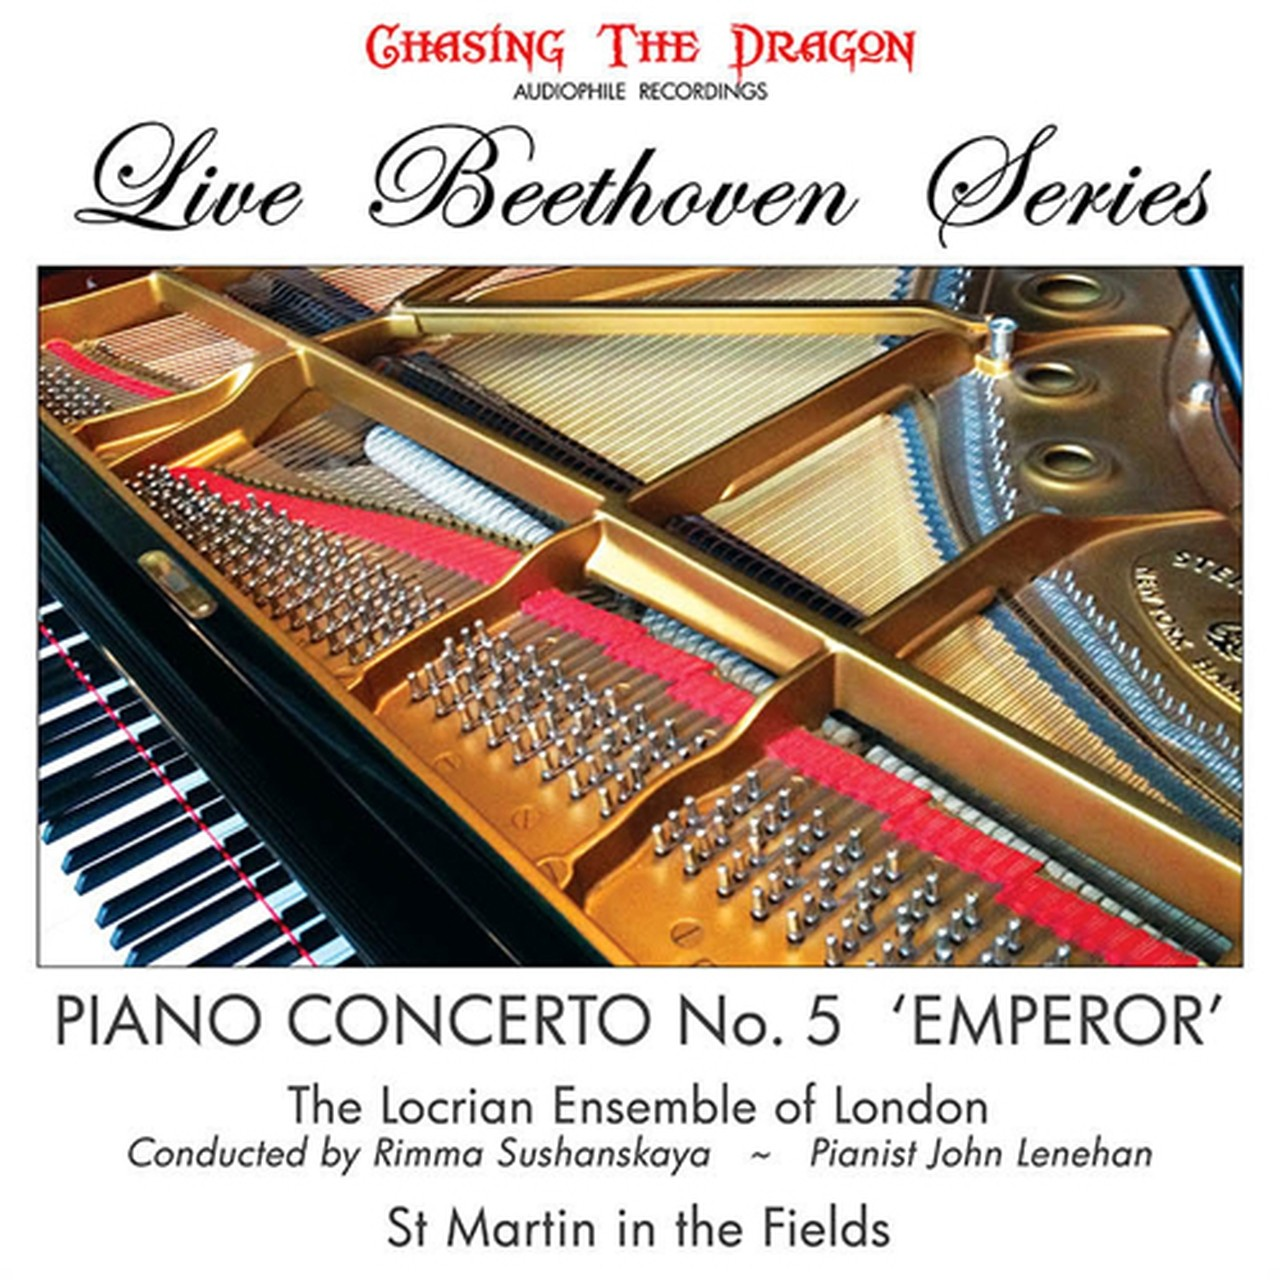 The Locrian Ensemble of London - Live Beethoven Series: Piano Concerto No. 5 'Emperor'